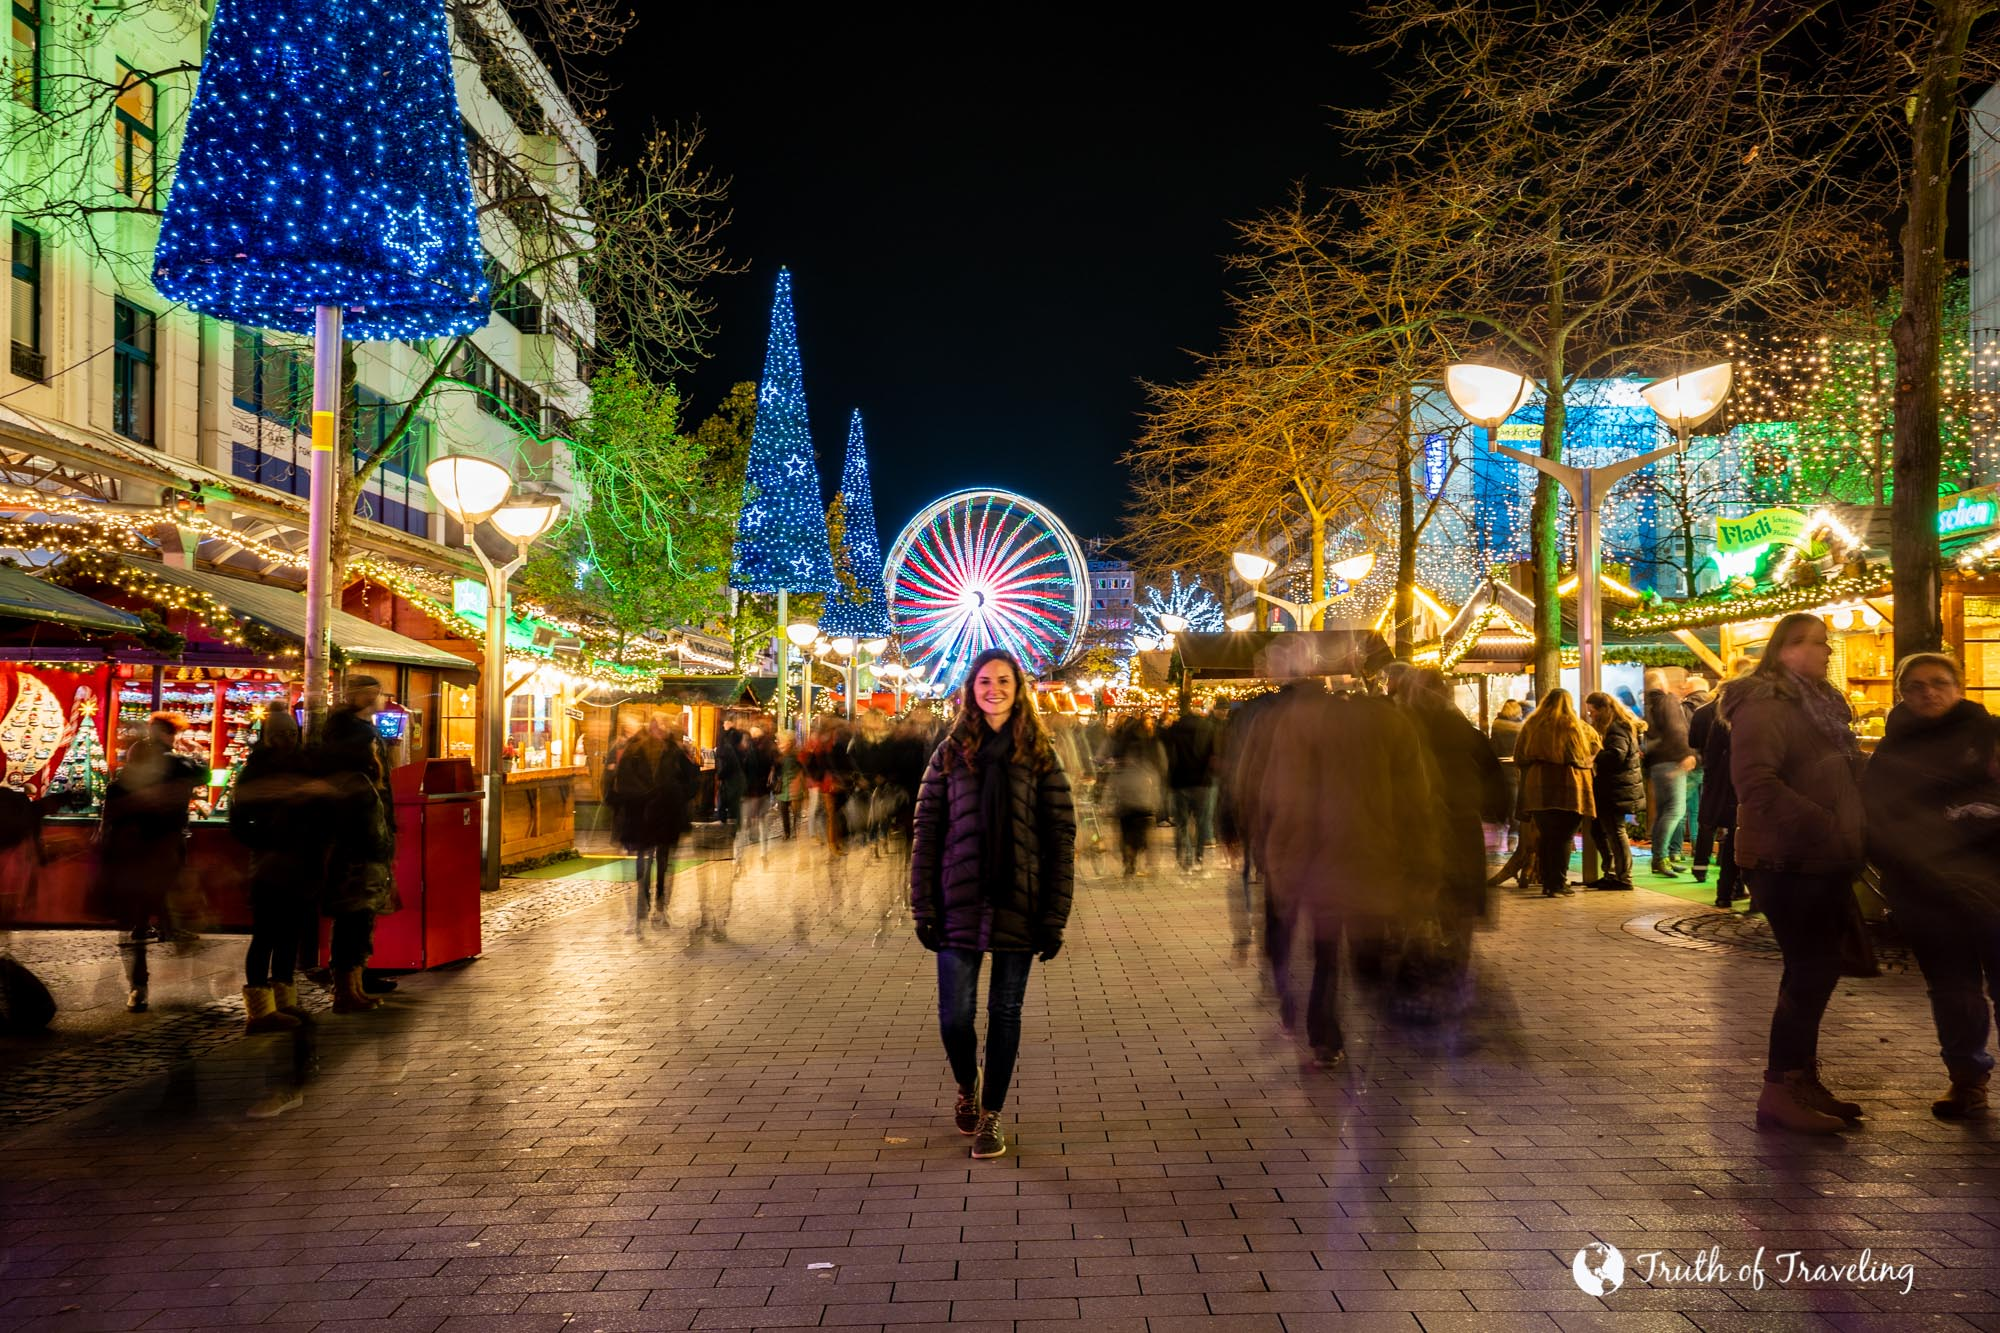 Visiting a German Christmas Market